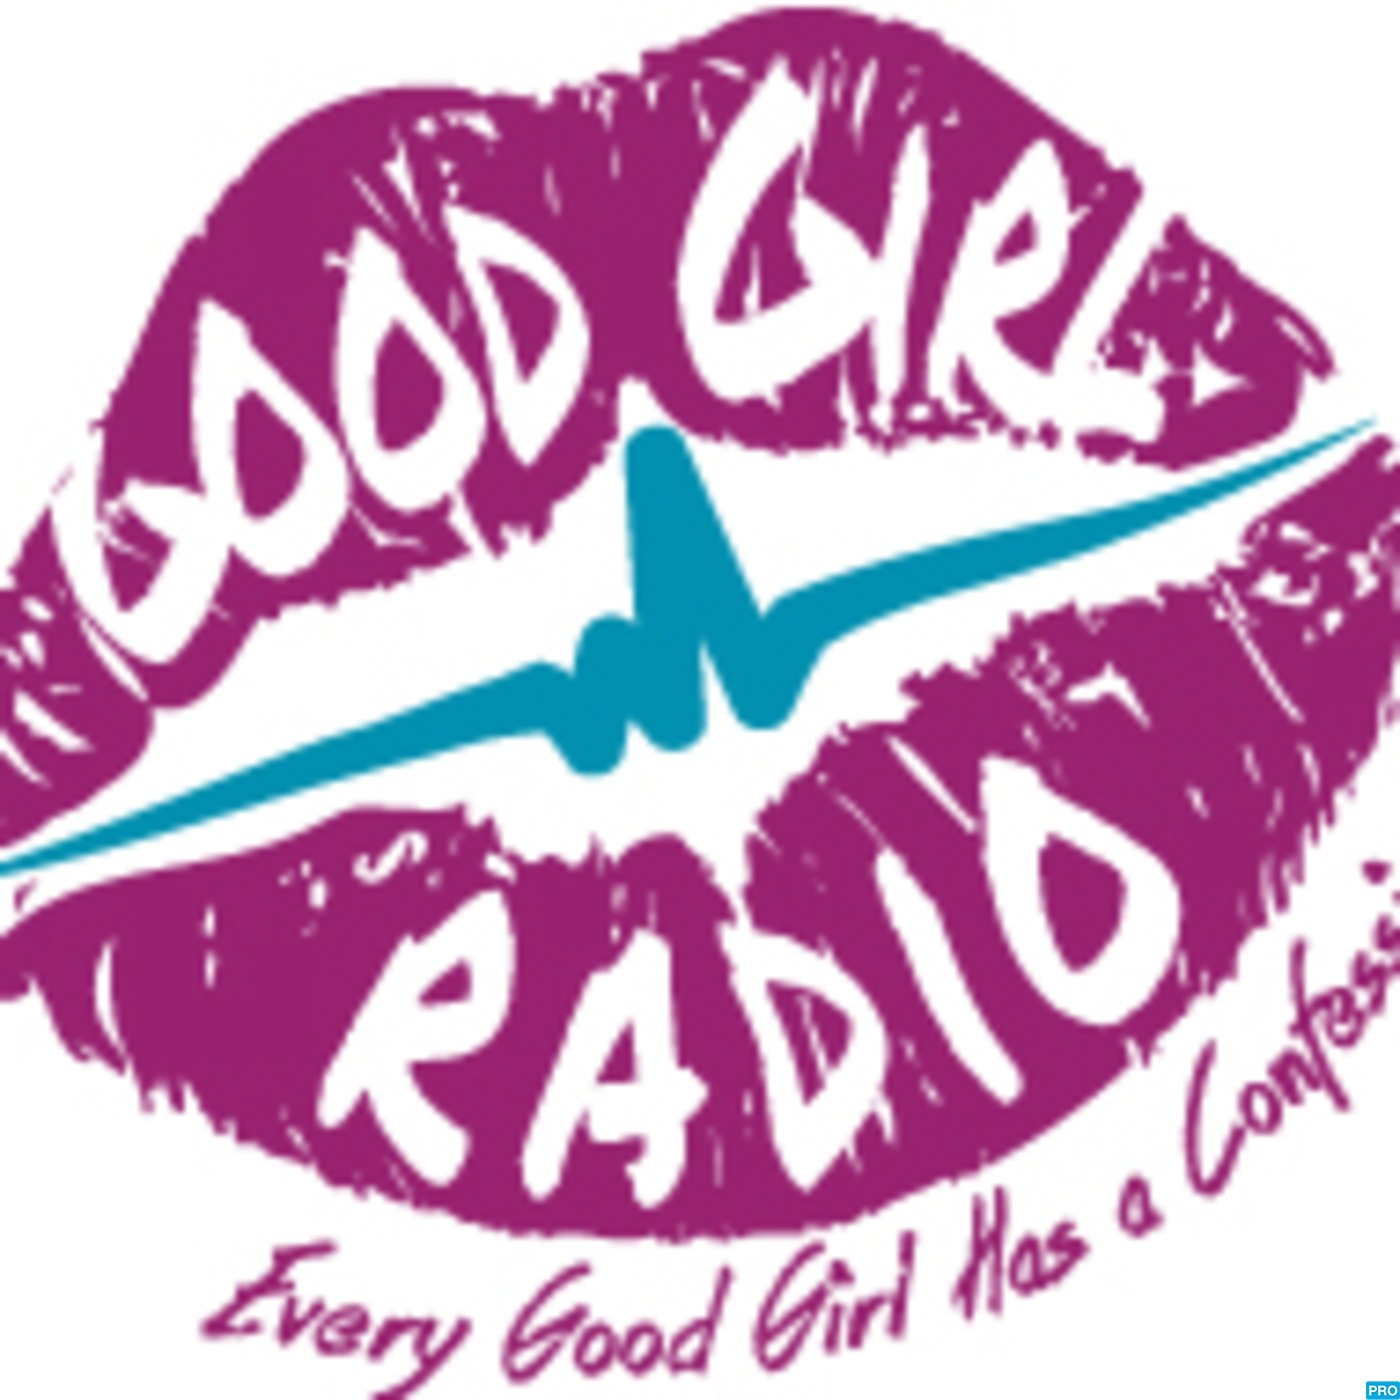 Good Girl Radio